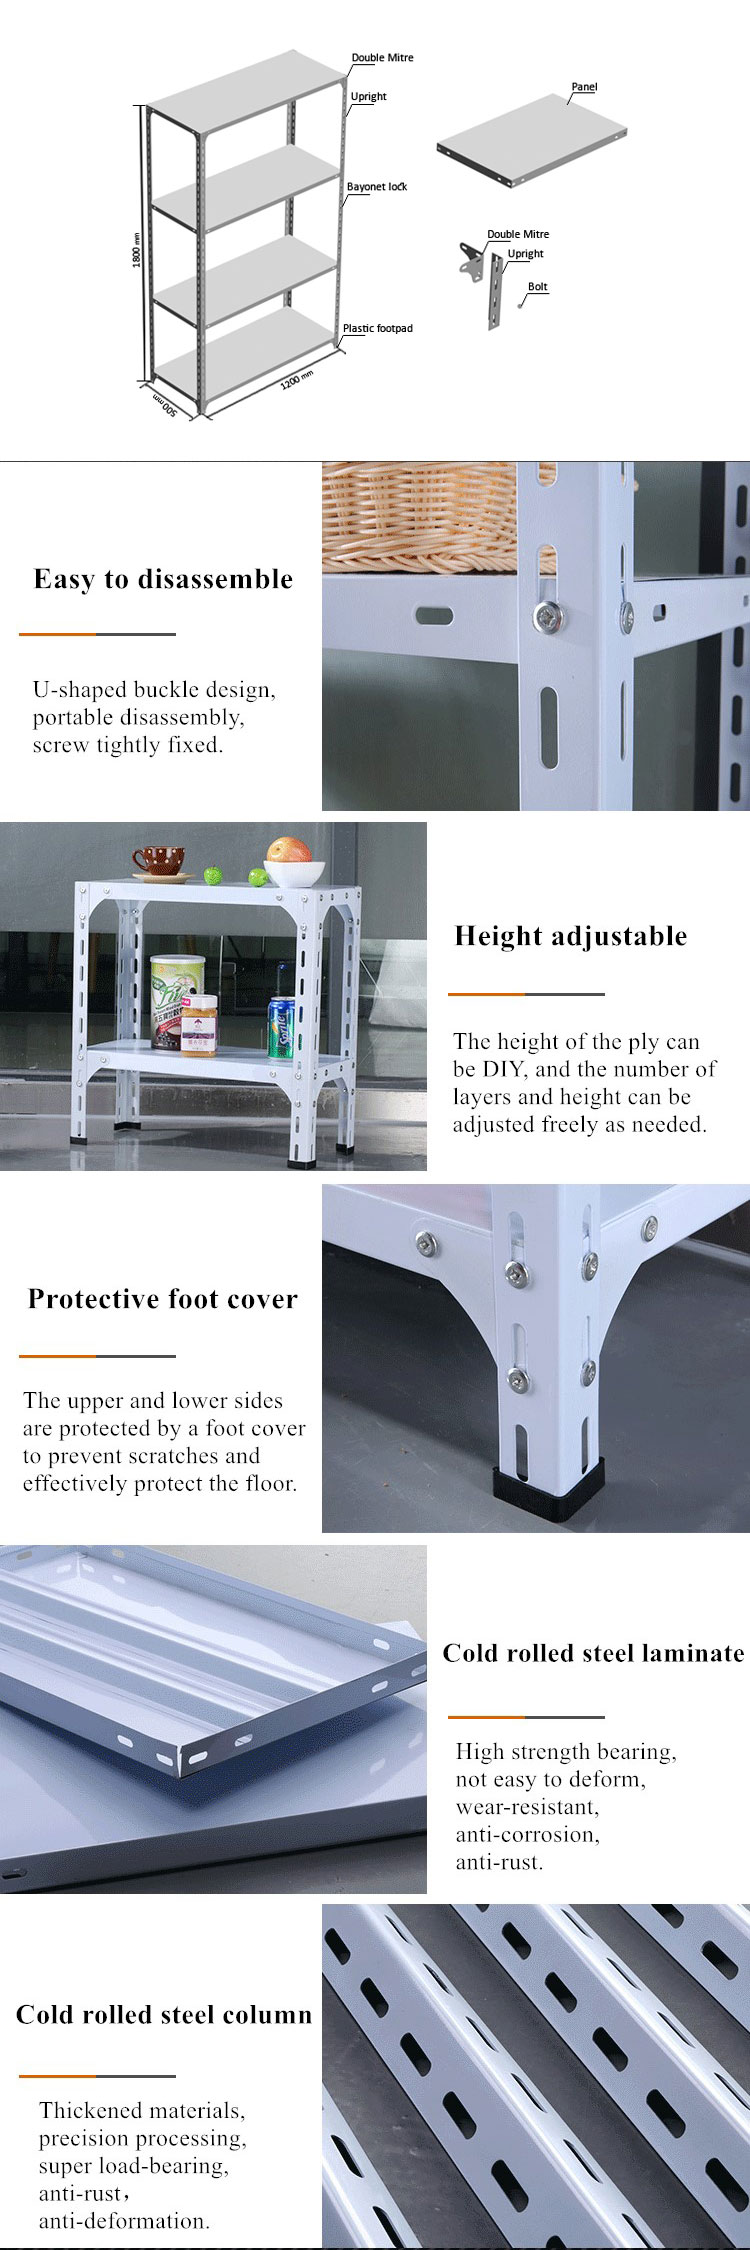 Details of Slotted Angle Shelving